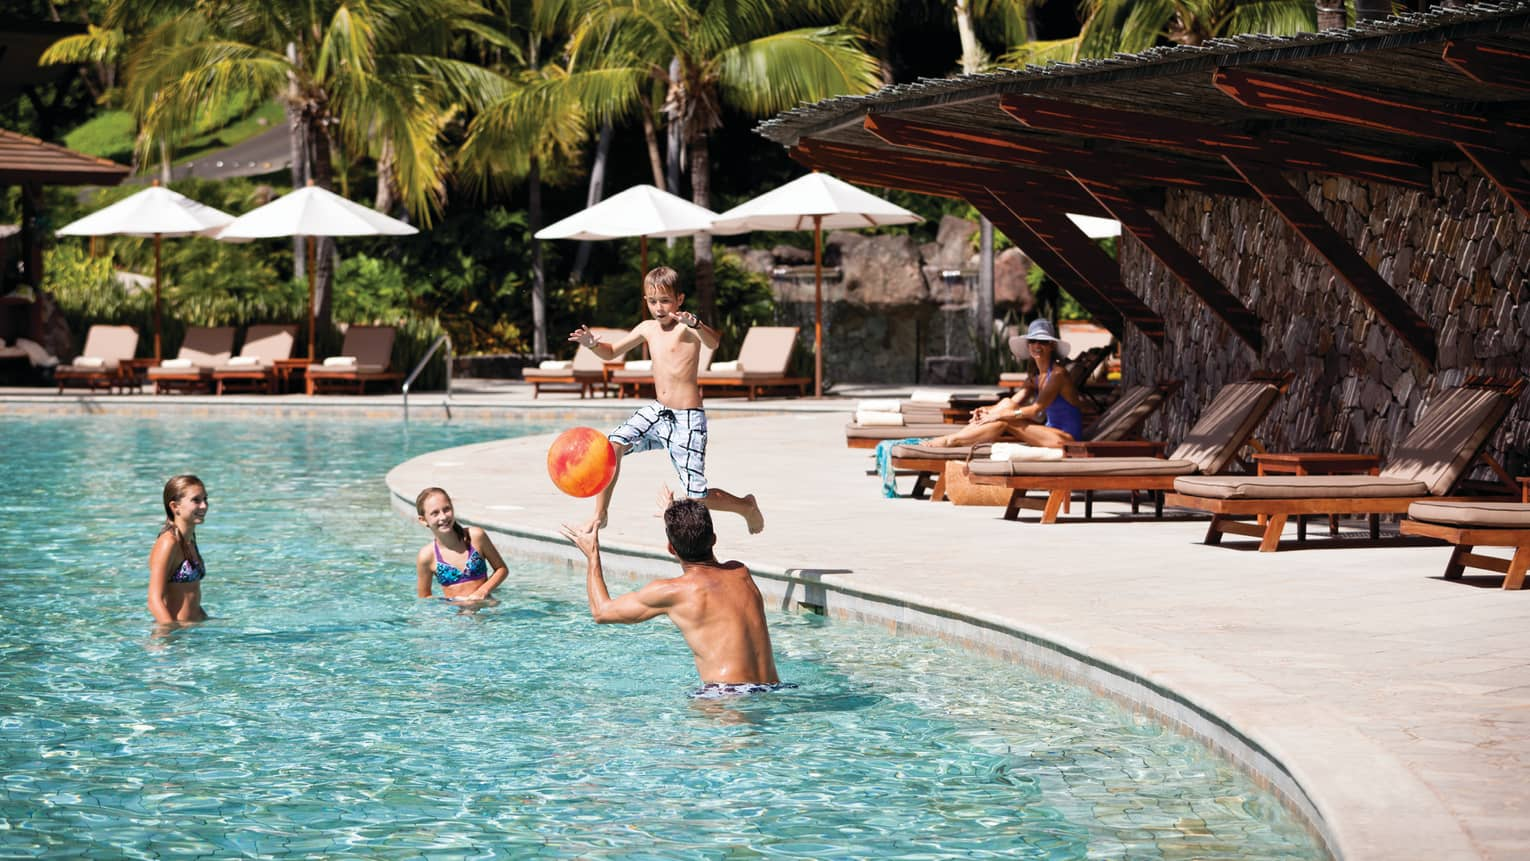 Boy jumps into outdoor Blanca swimming pool where family plays with orange beach ball